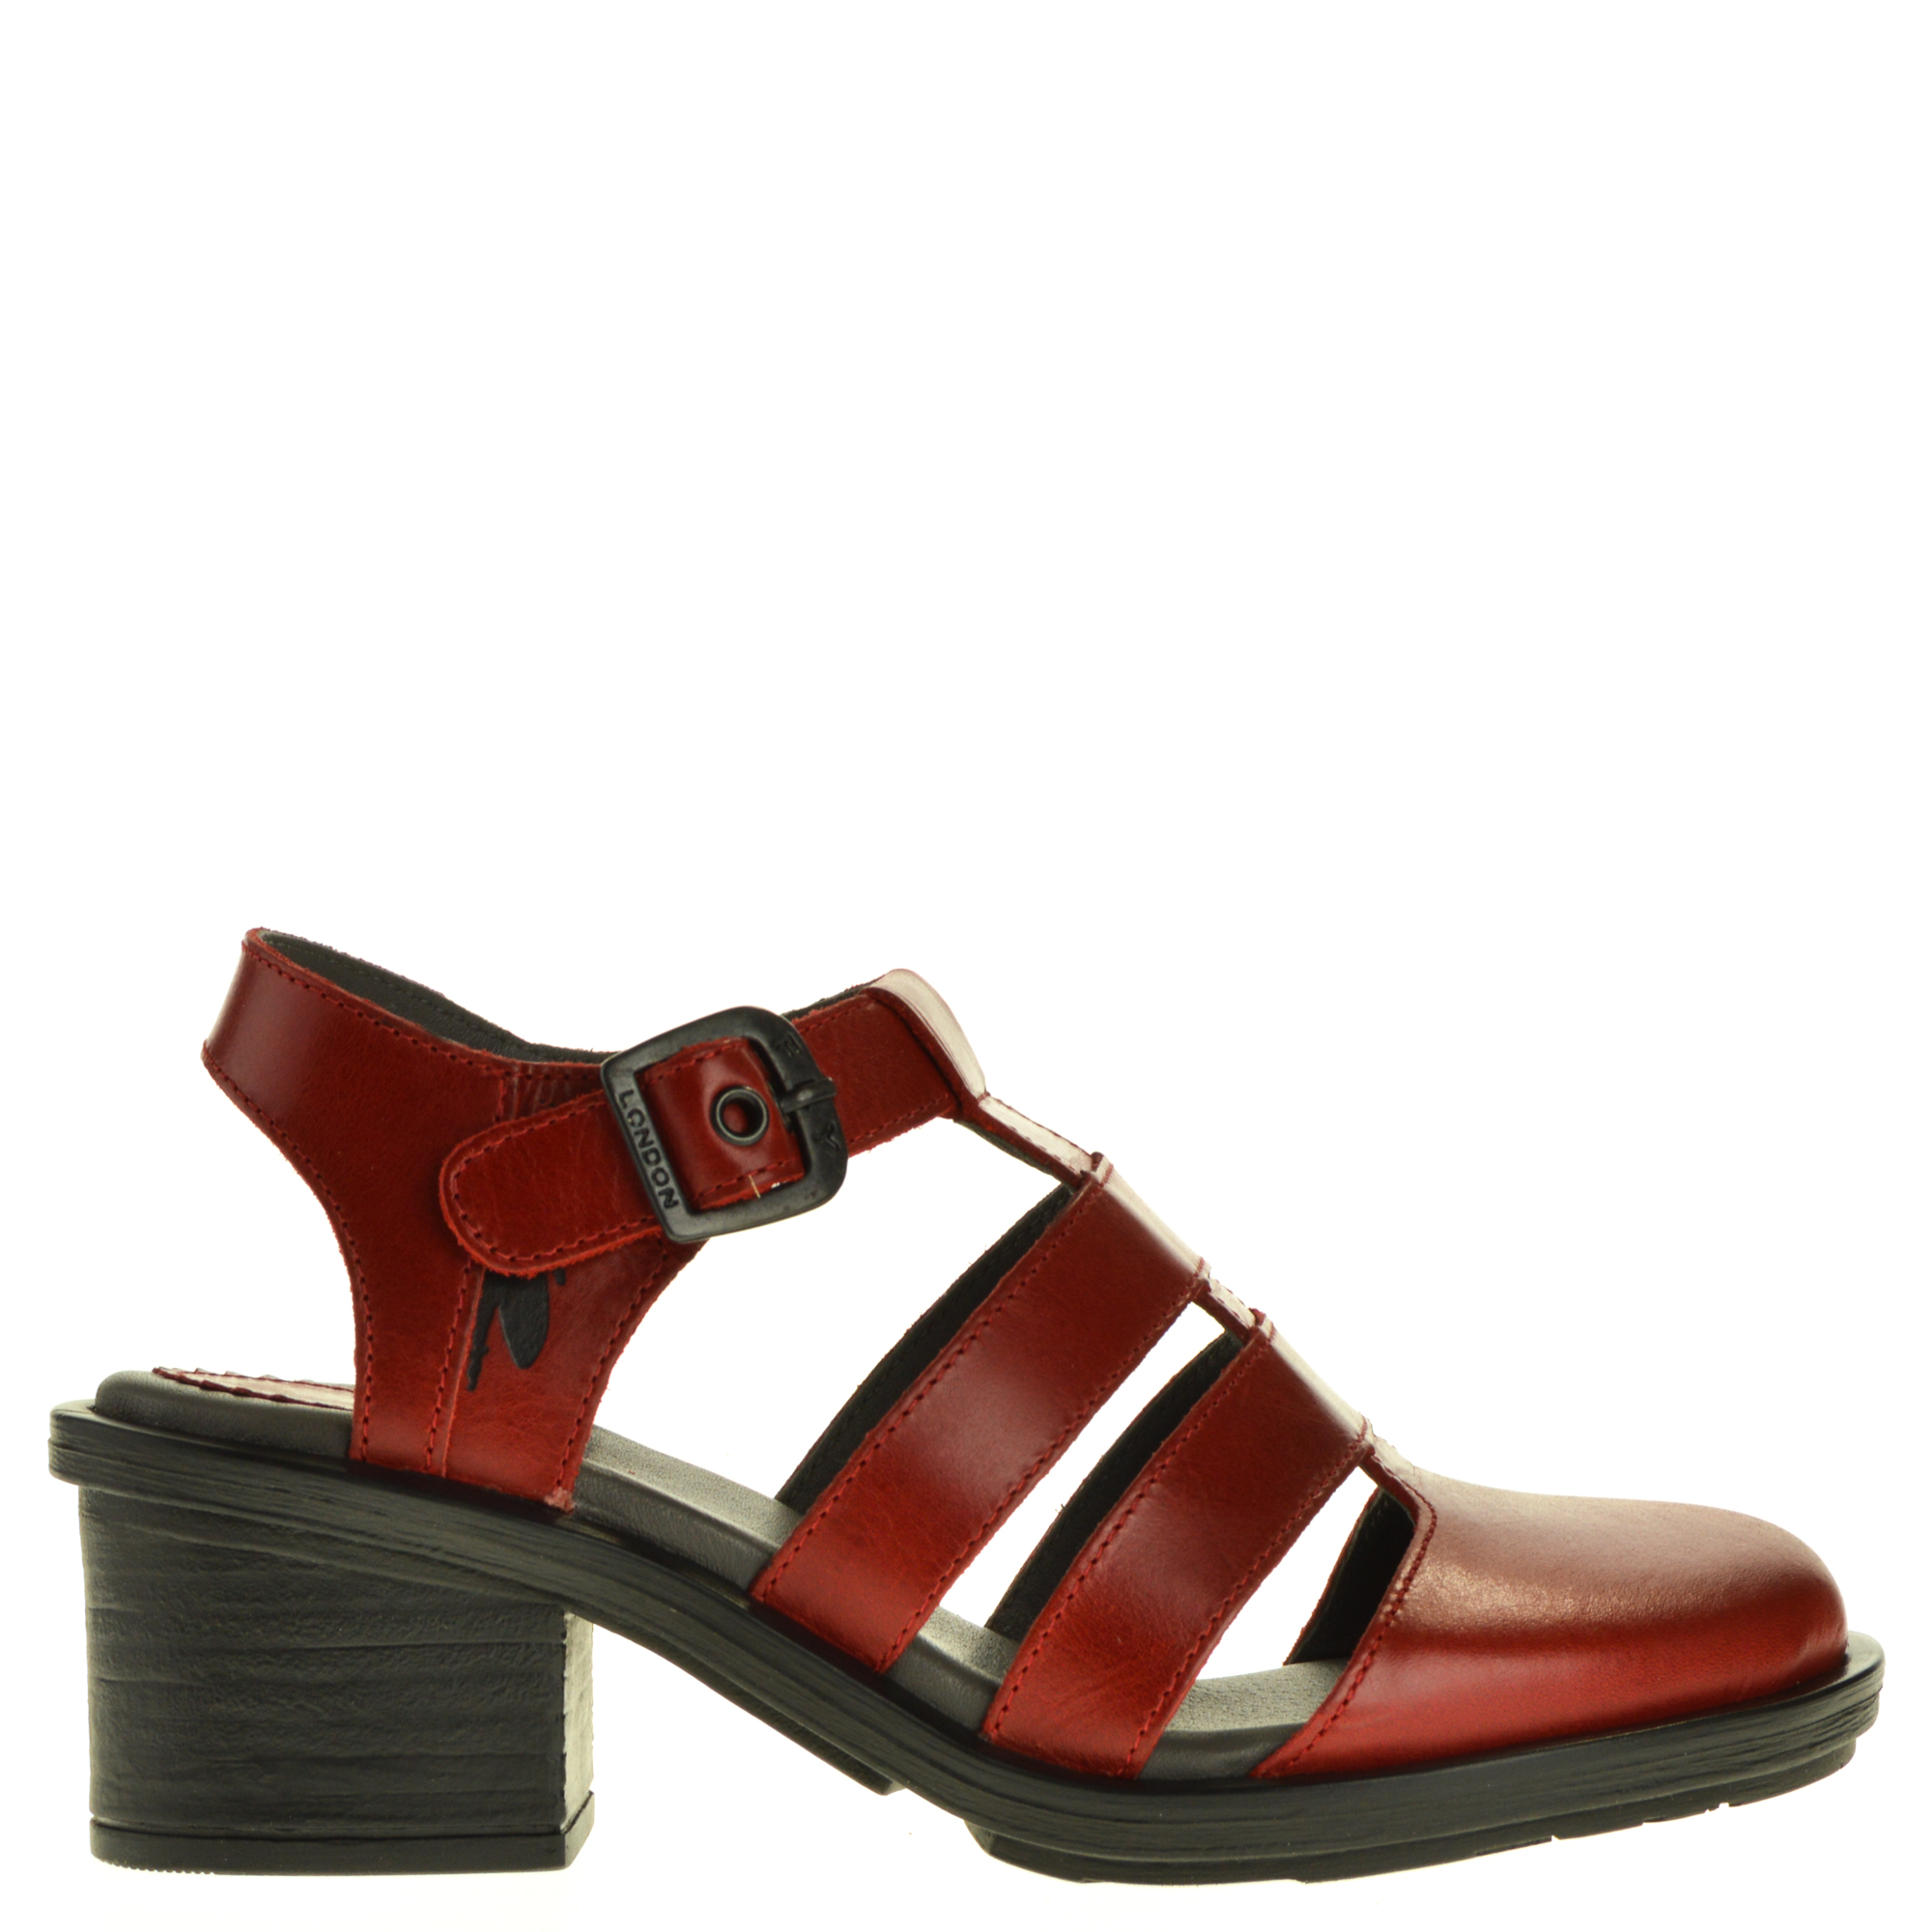 5be04db070f6 Fly London Sandals Red for Women